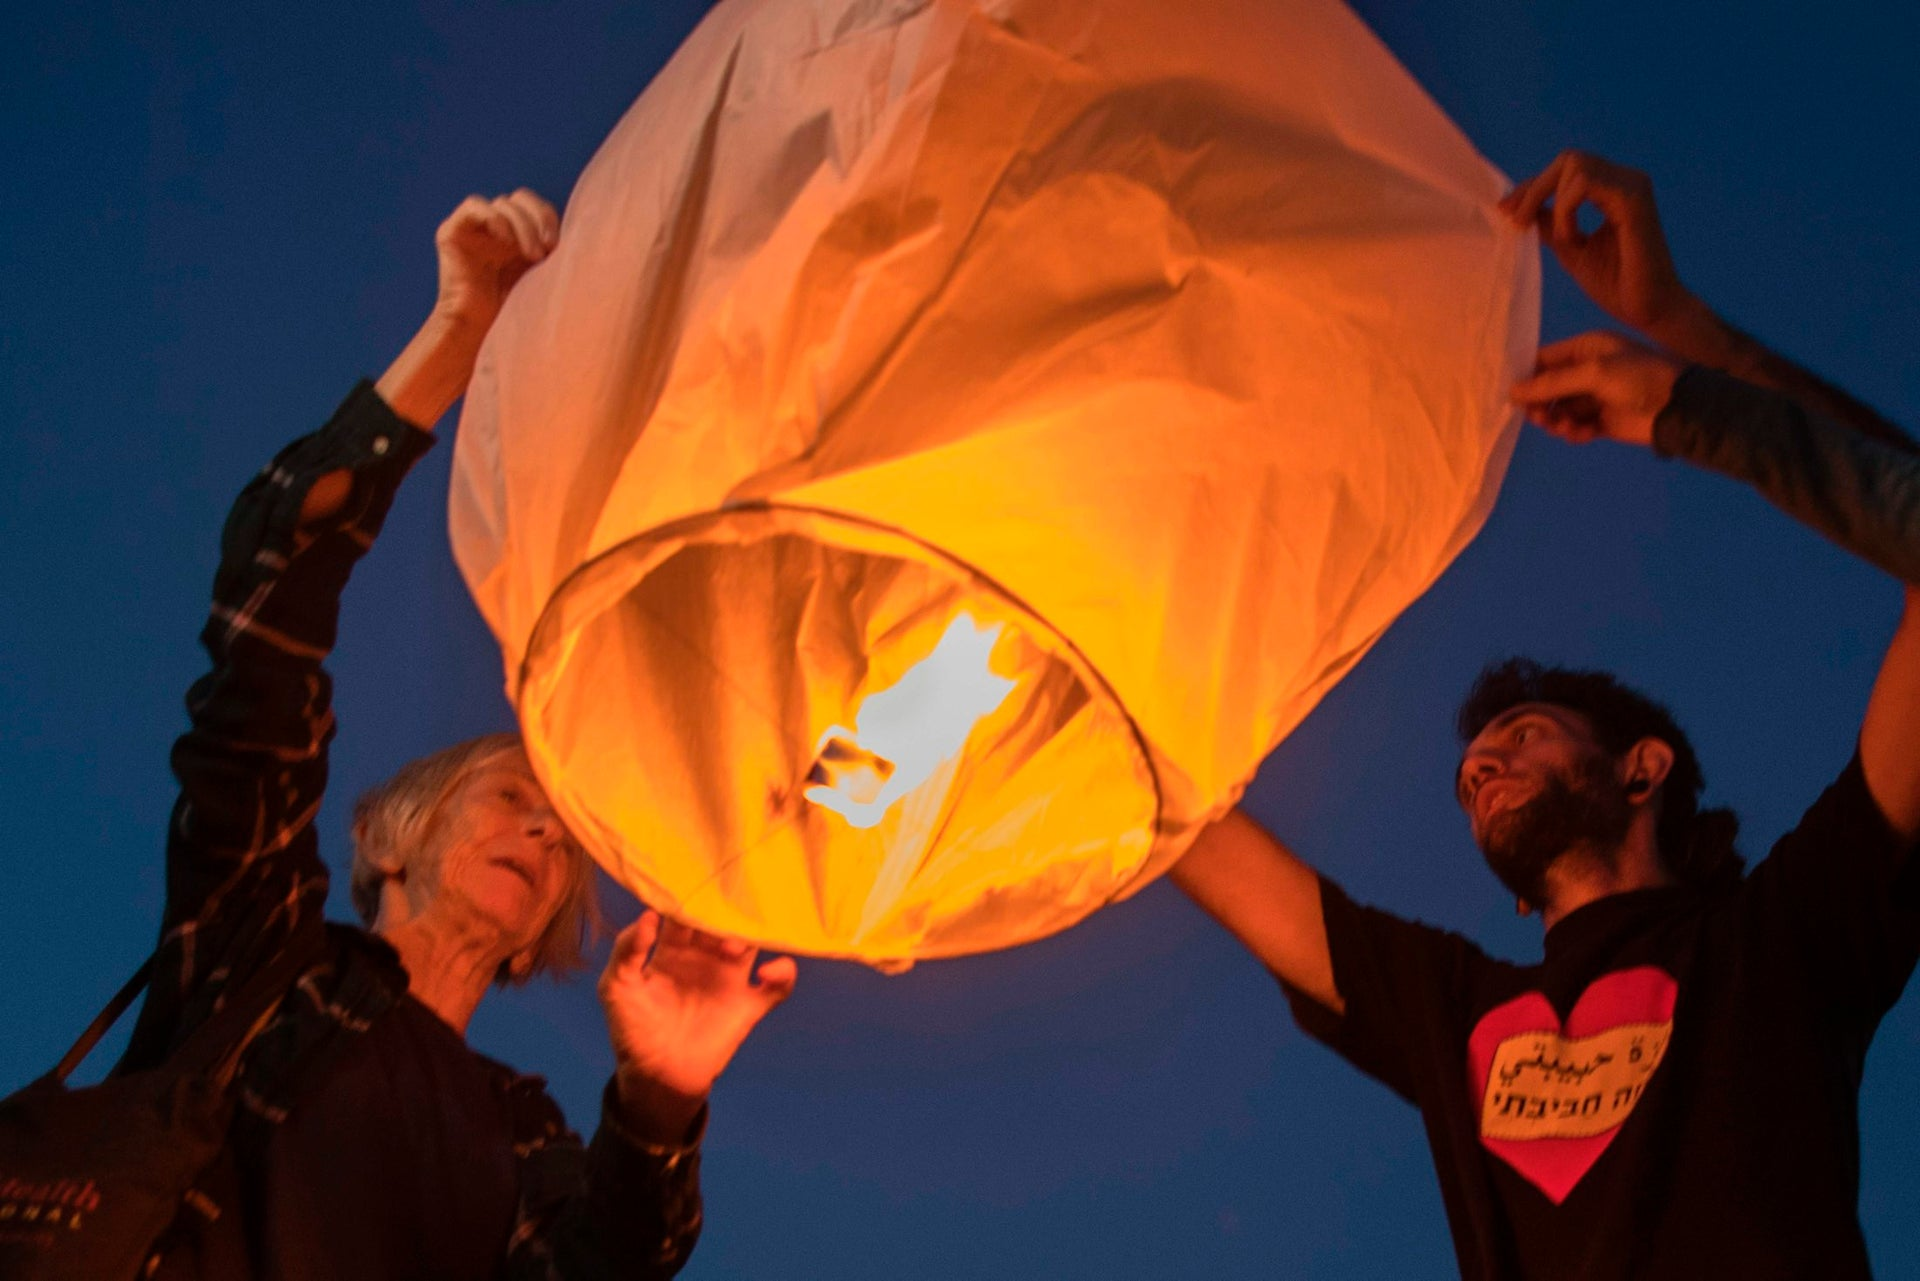 Israeli peace activists gather near the border fence with the Gaza Strip to launch into the air 150 sky paper lanterns in solidarity with Gaza residents on June 19, 2017, in the southern Israeli city of Ashkelon.